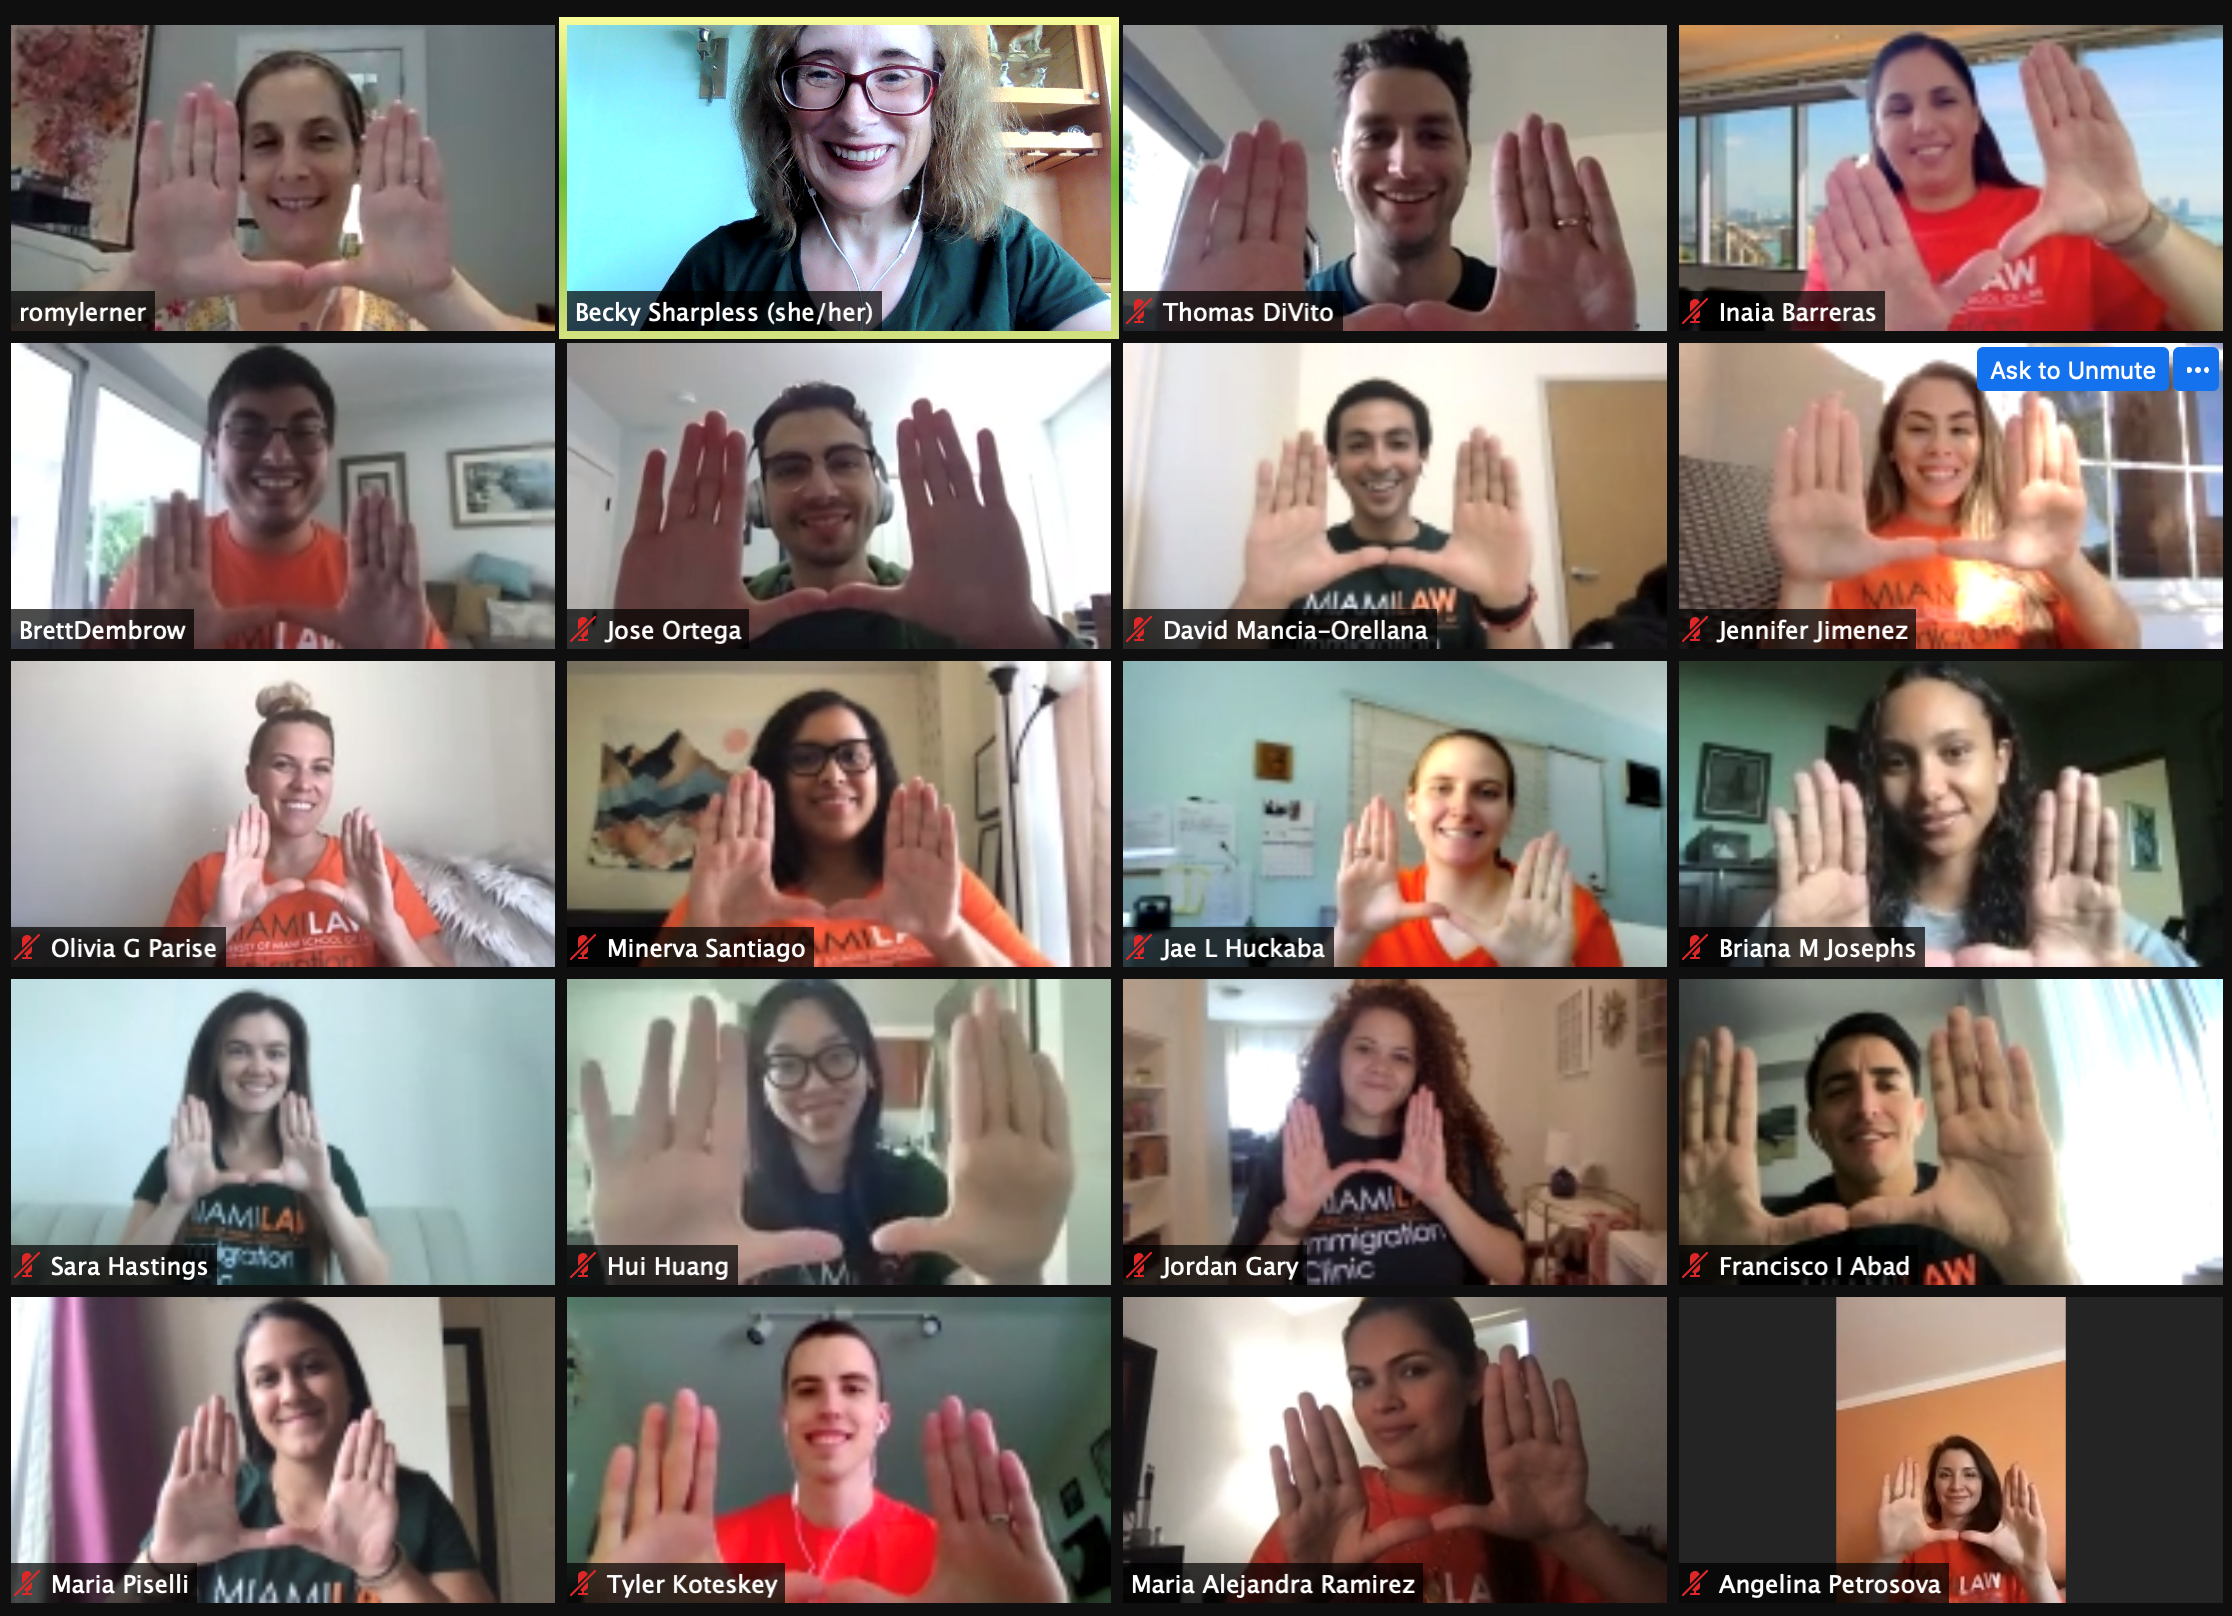 Students and professors on a video conference call